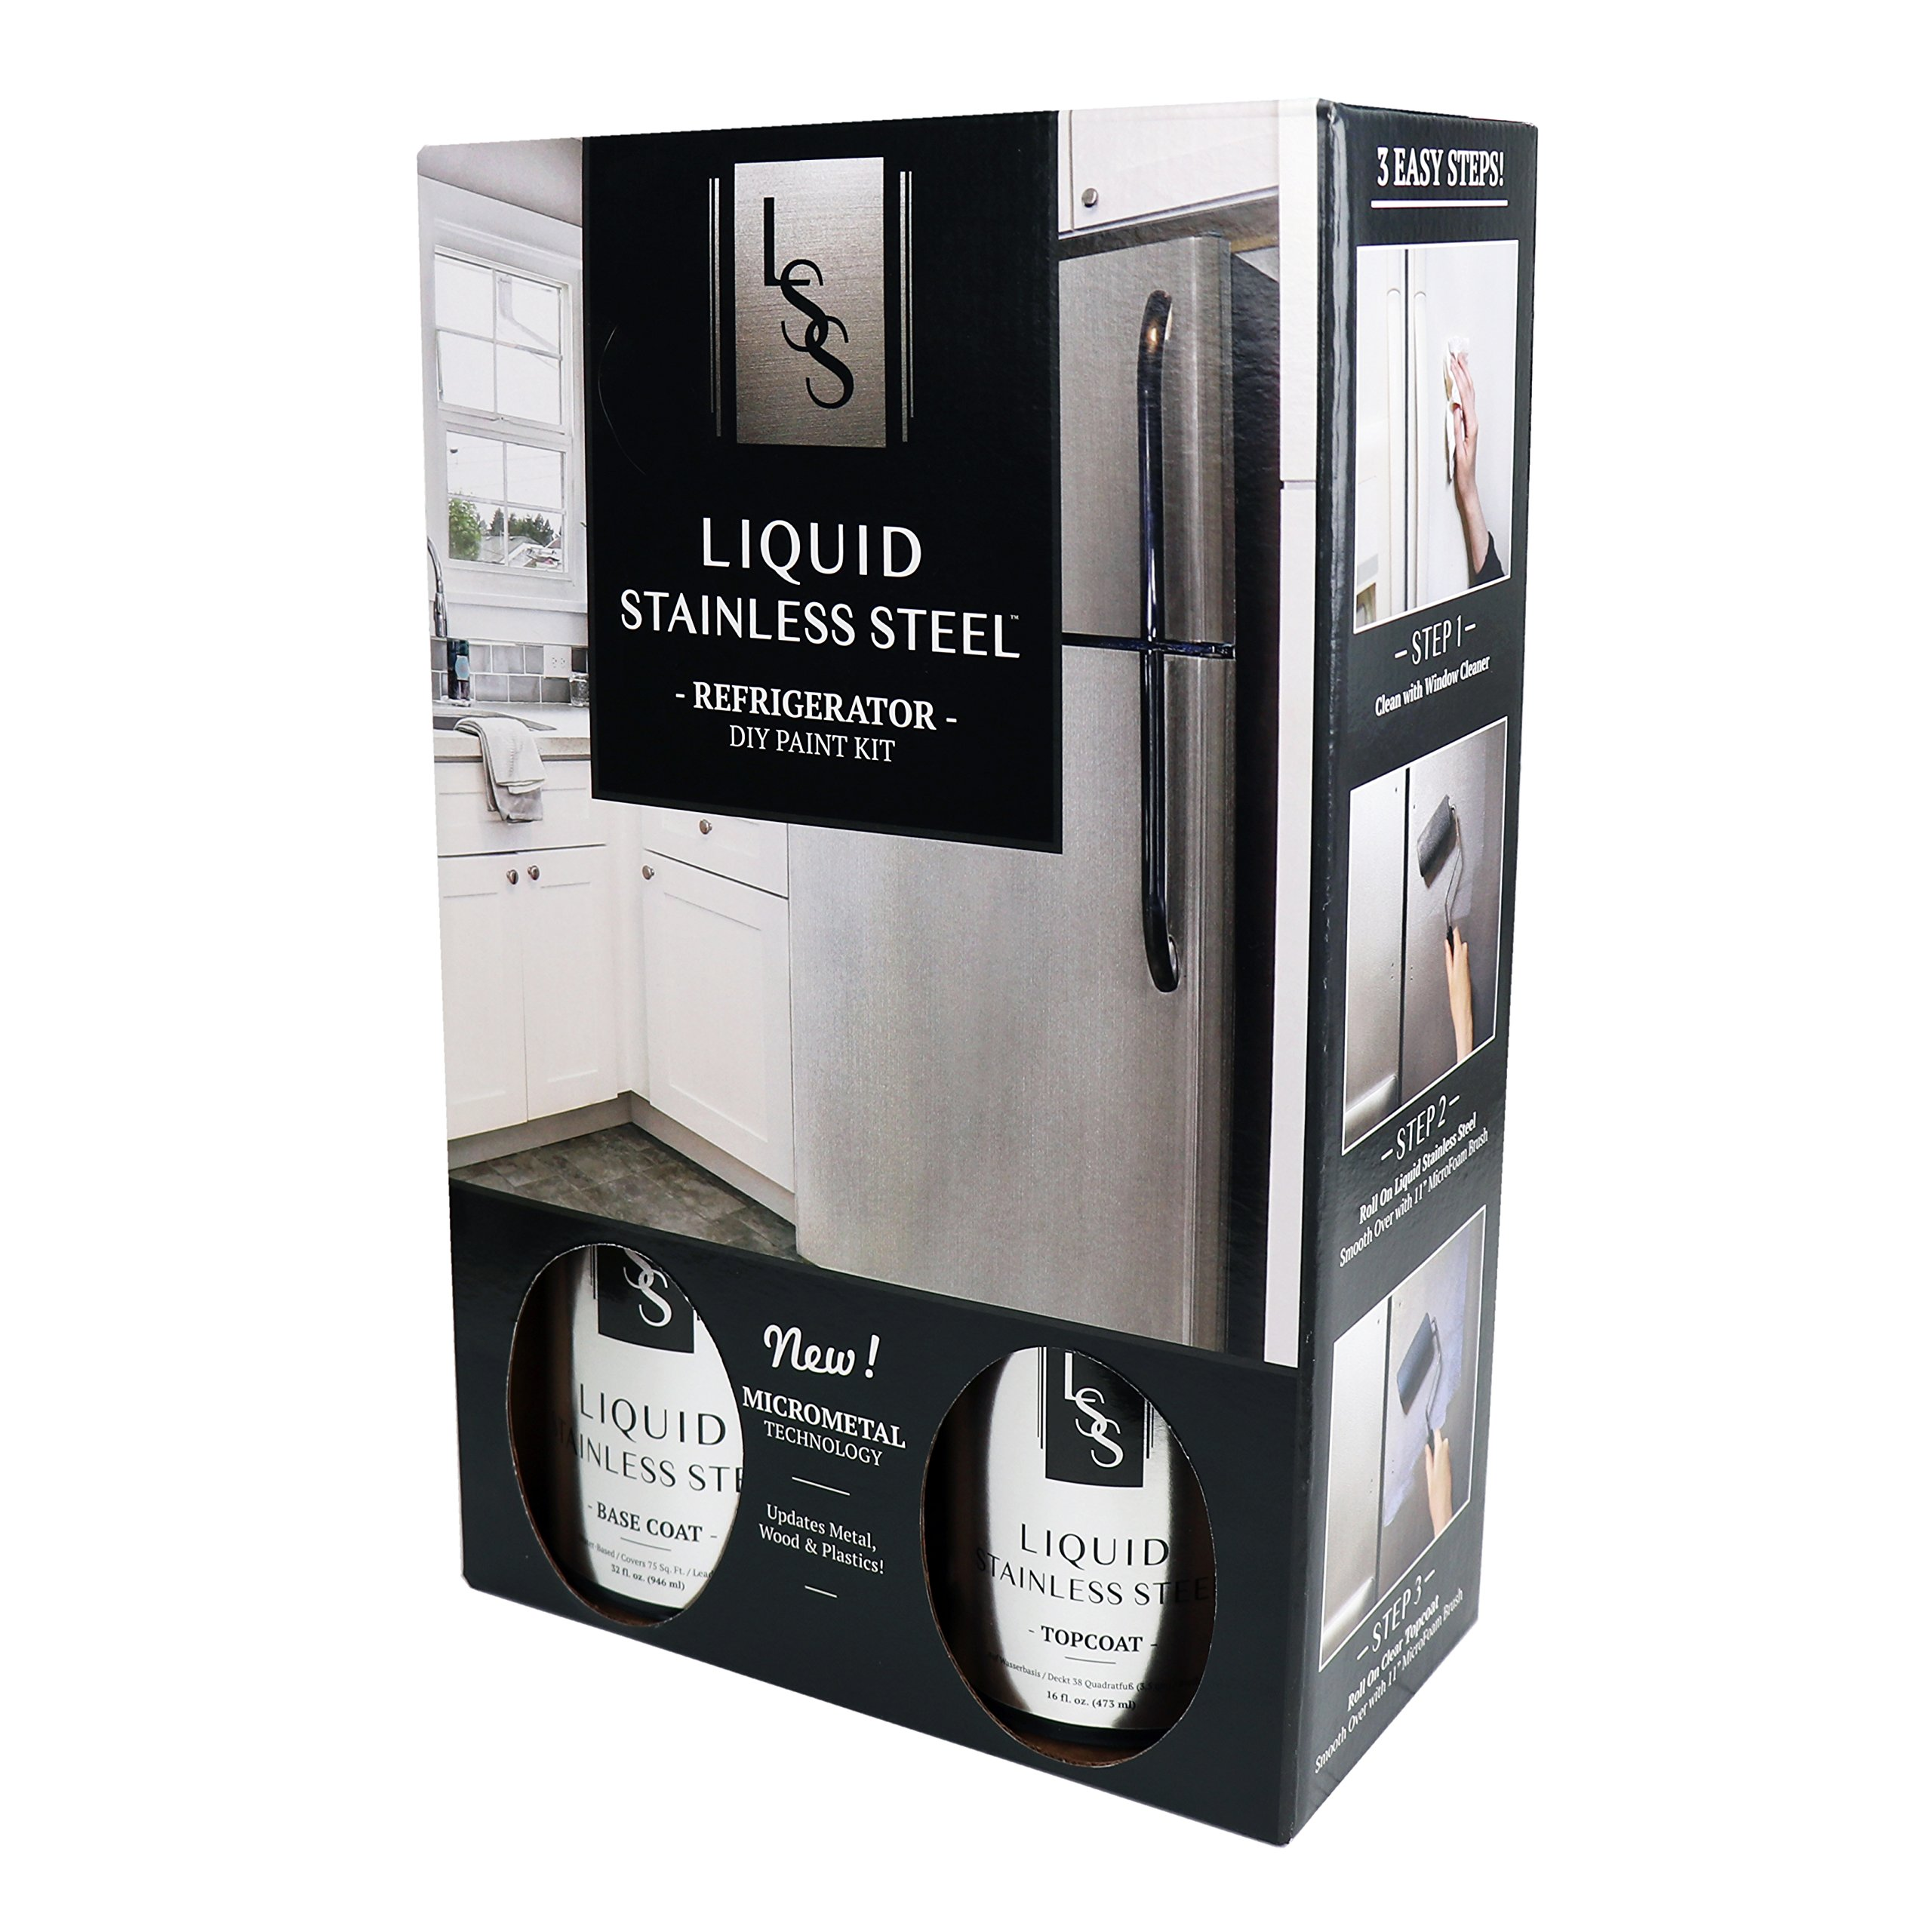 Liquid Stainless Steel Fridge Kit